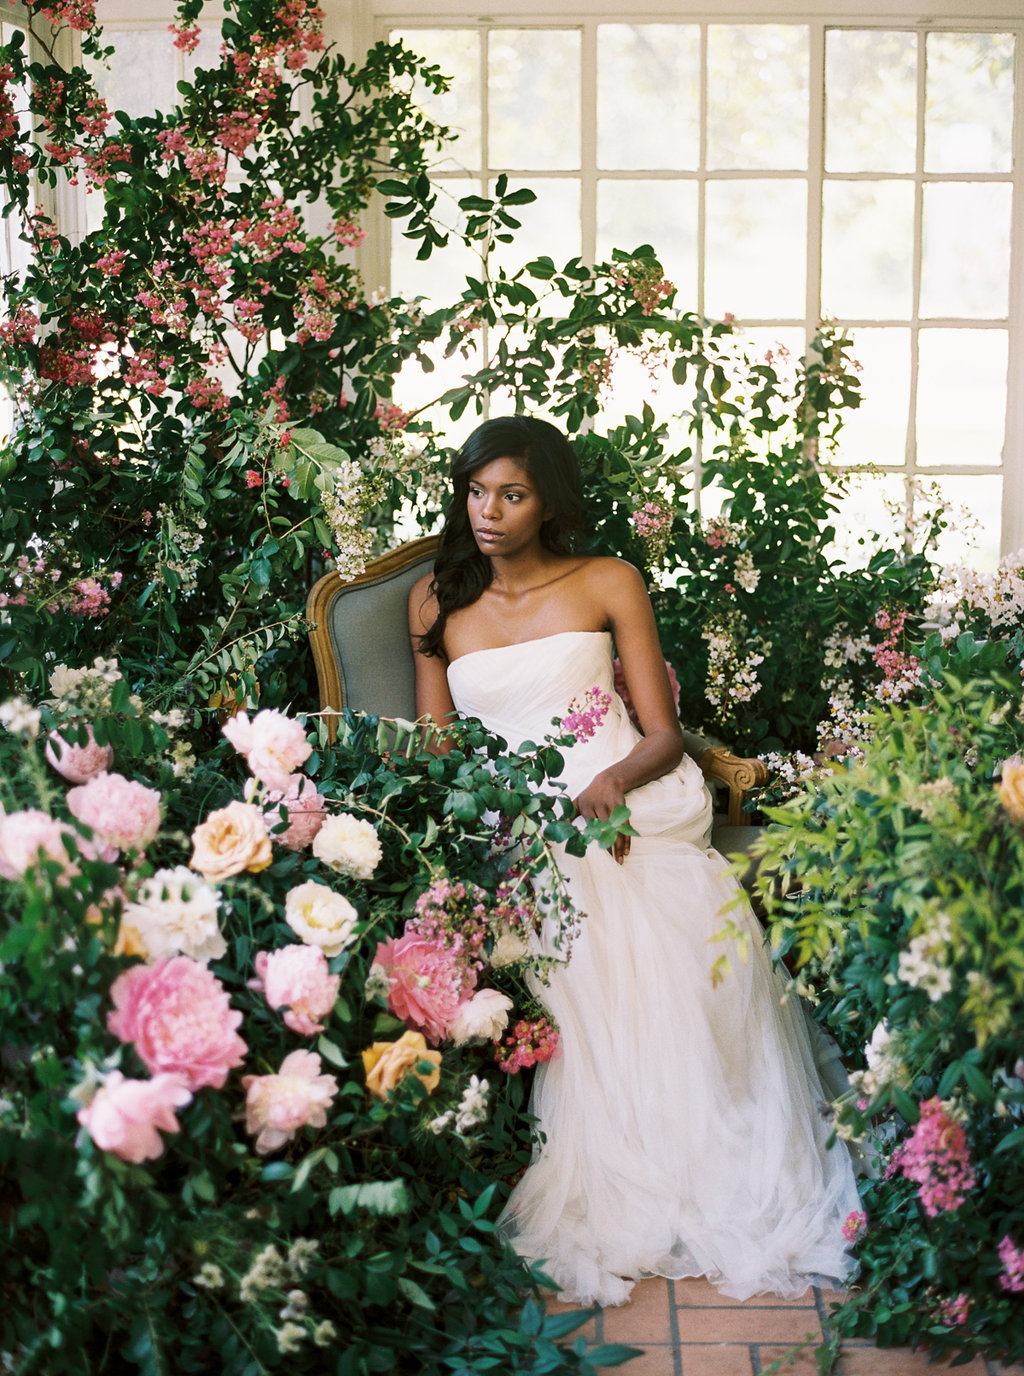 Growing garden wedding inspiration featured in   Style Me Pretty